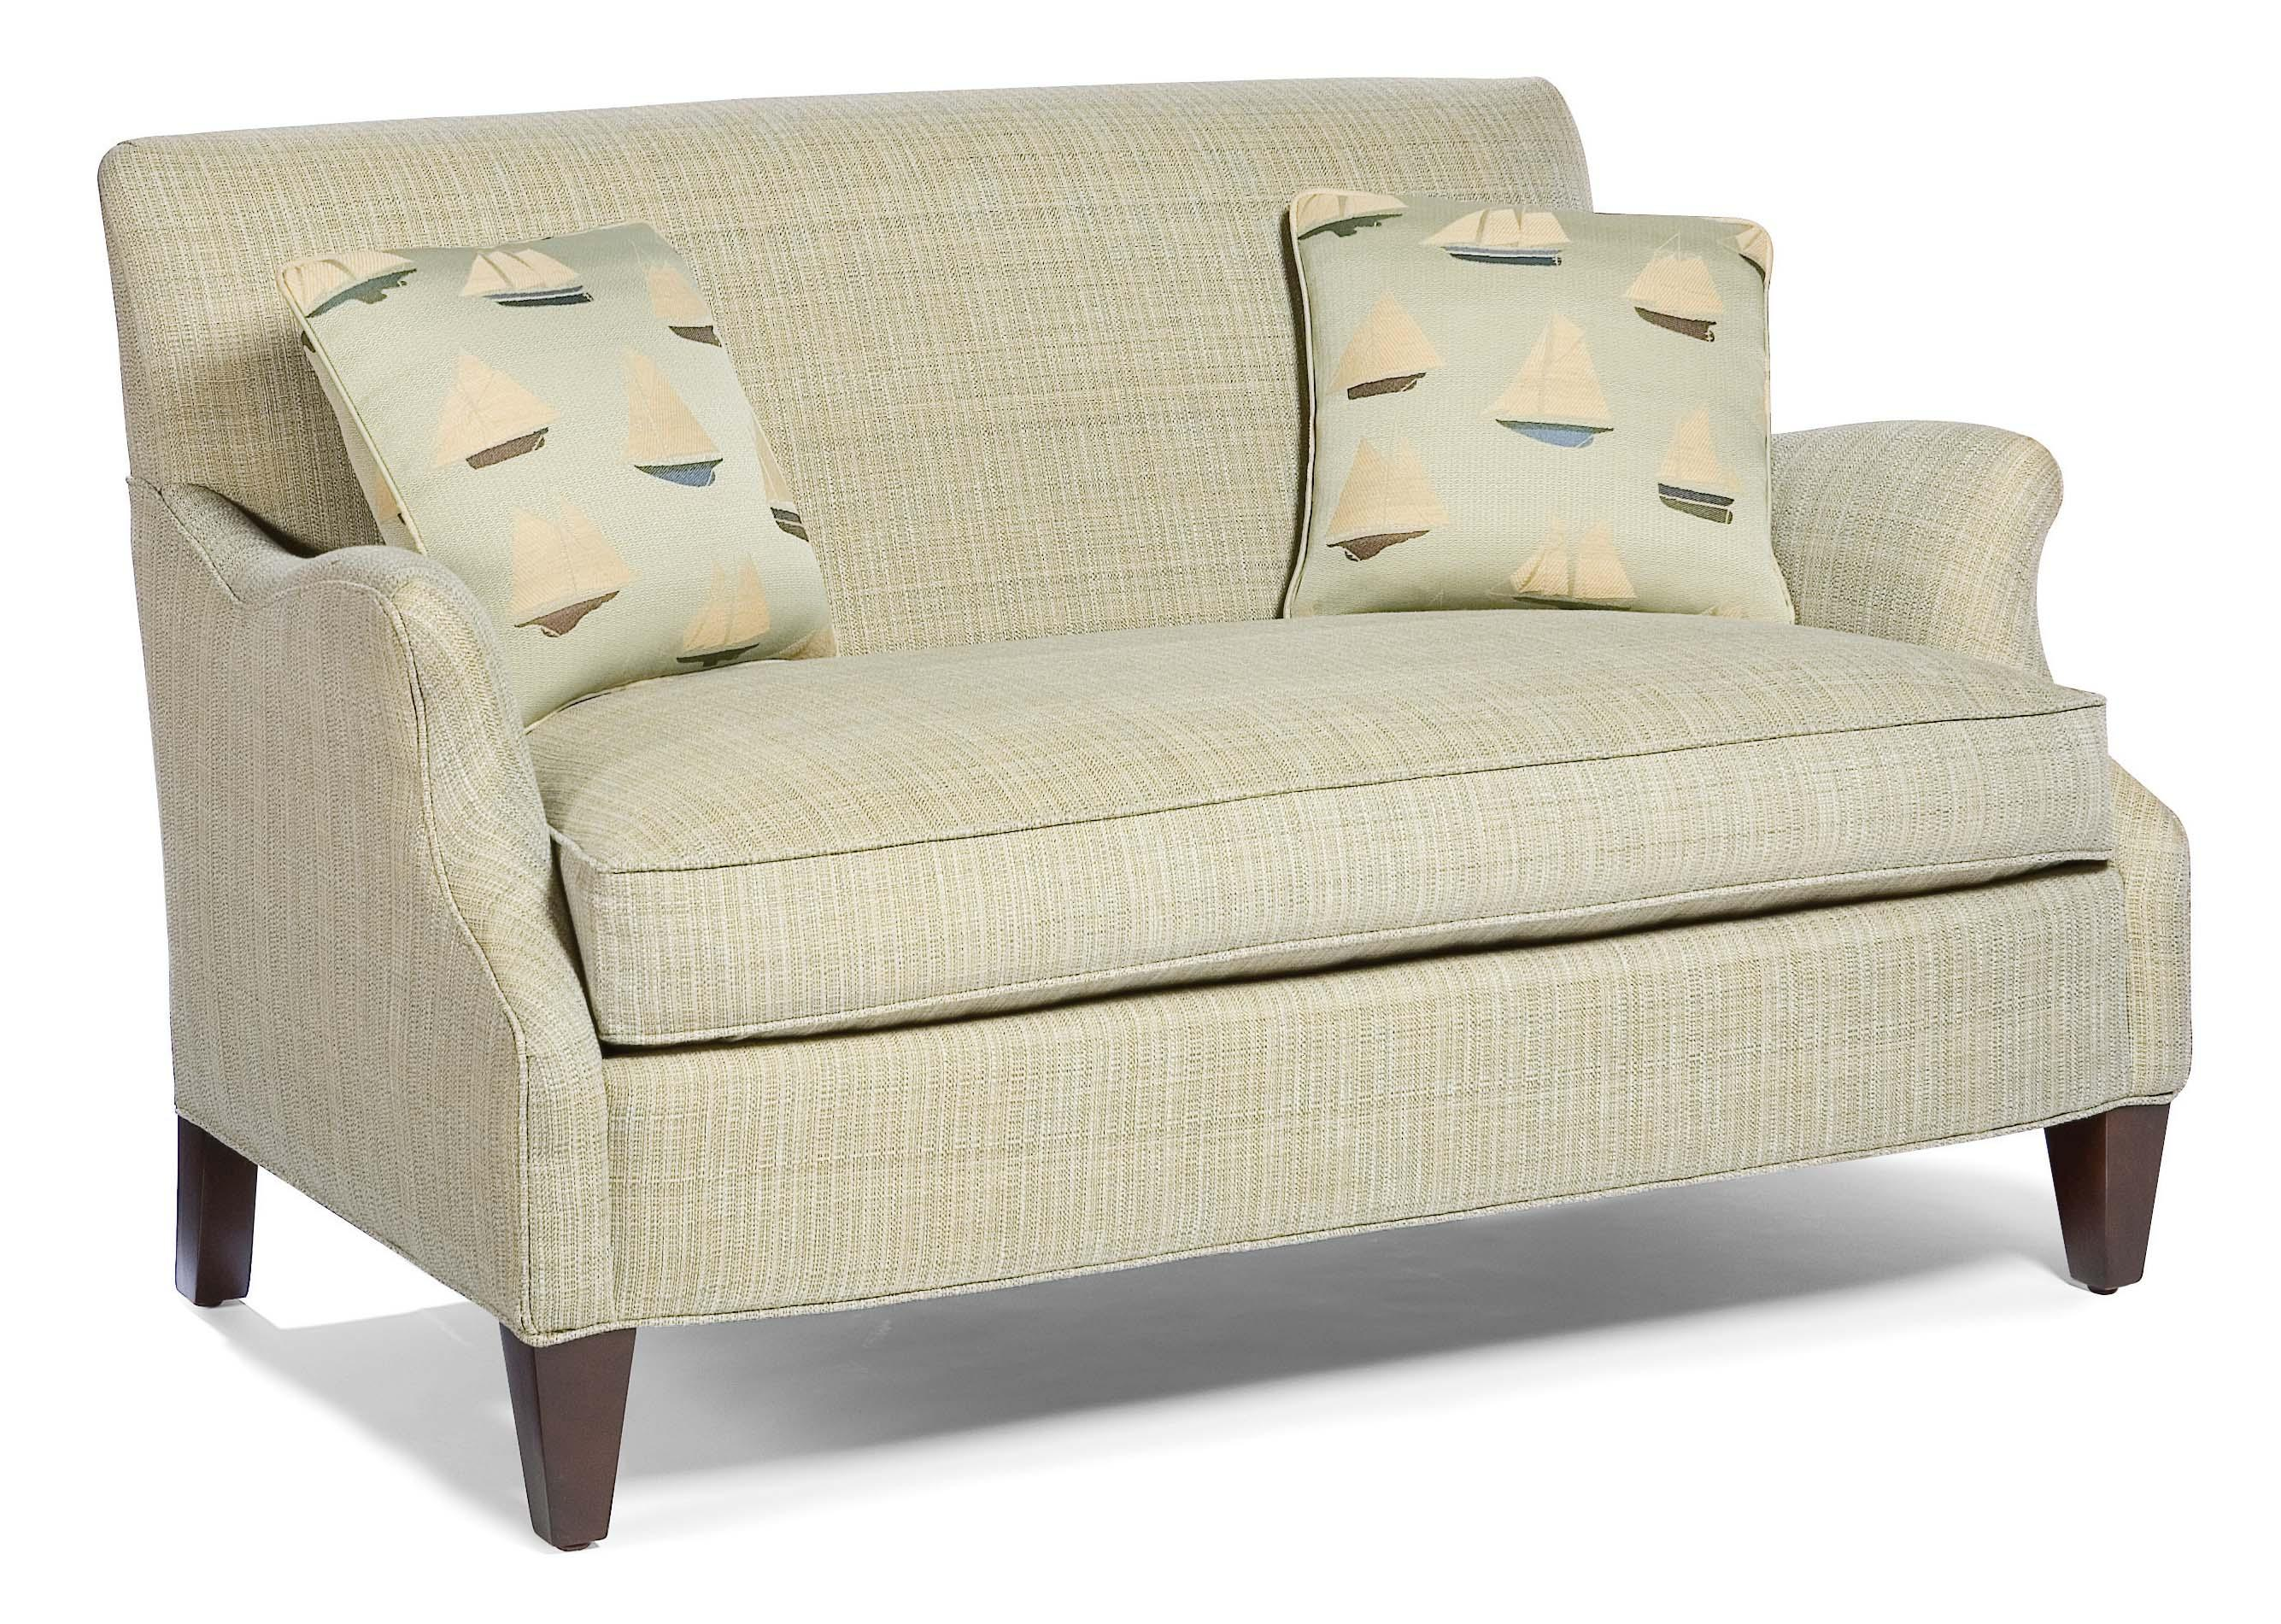 5706 Settee by Fairfield at Miller Home